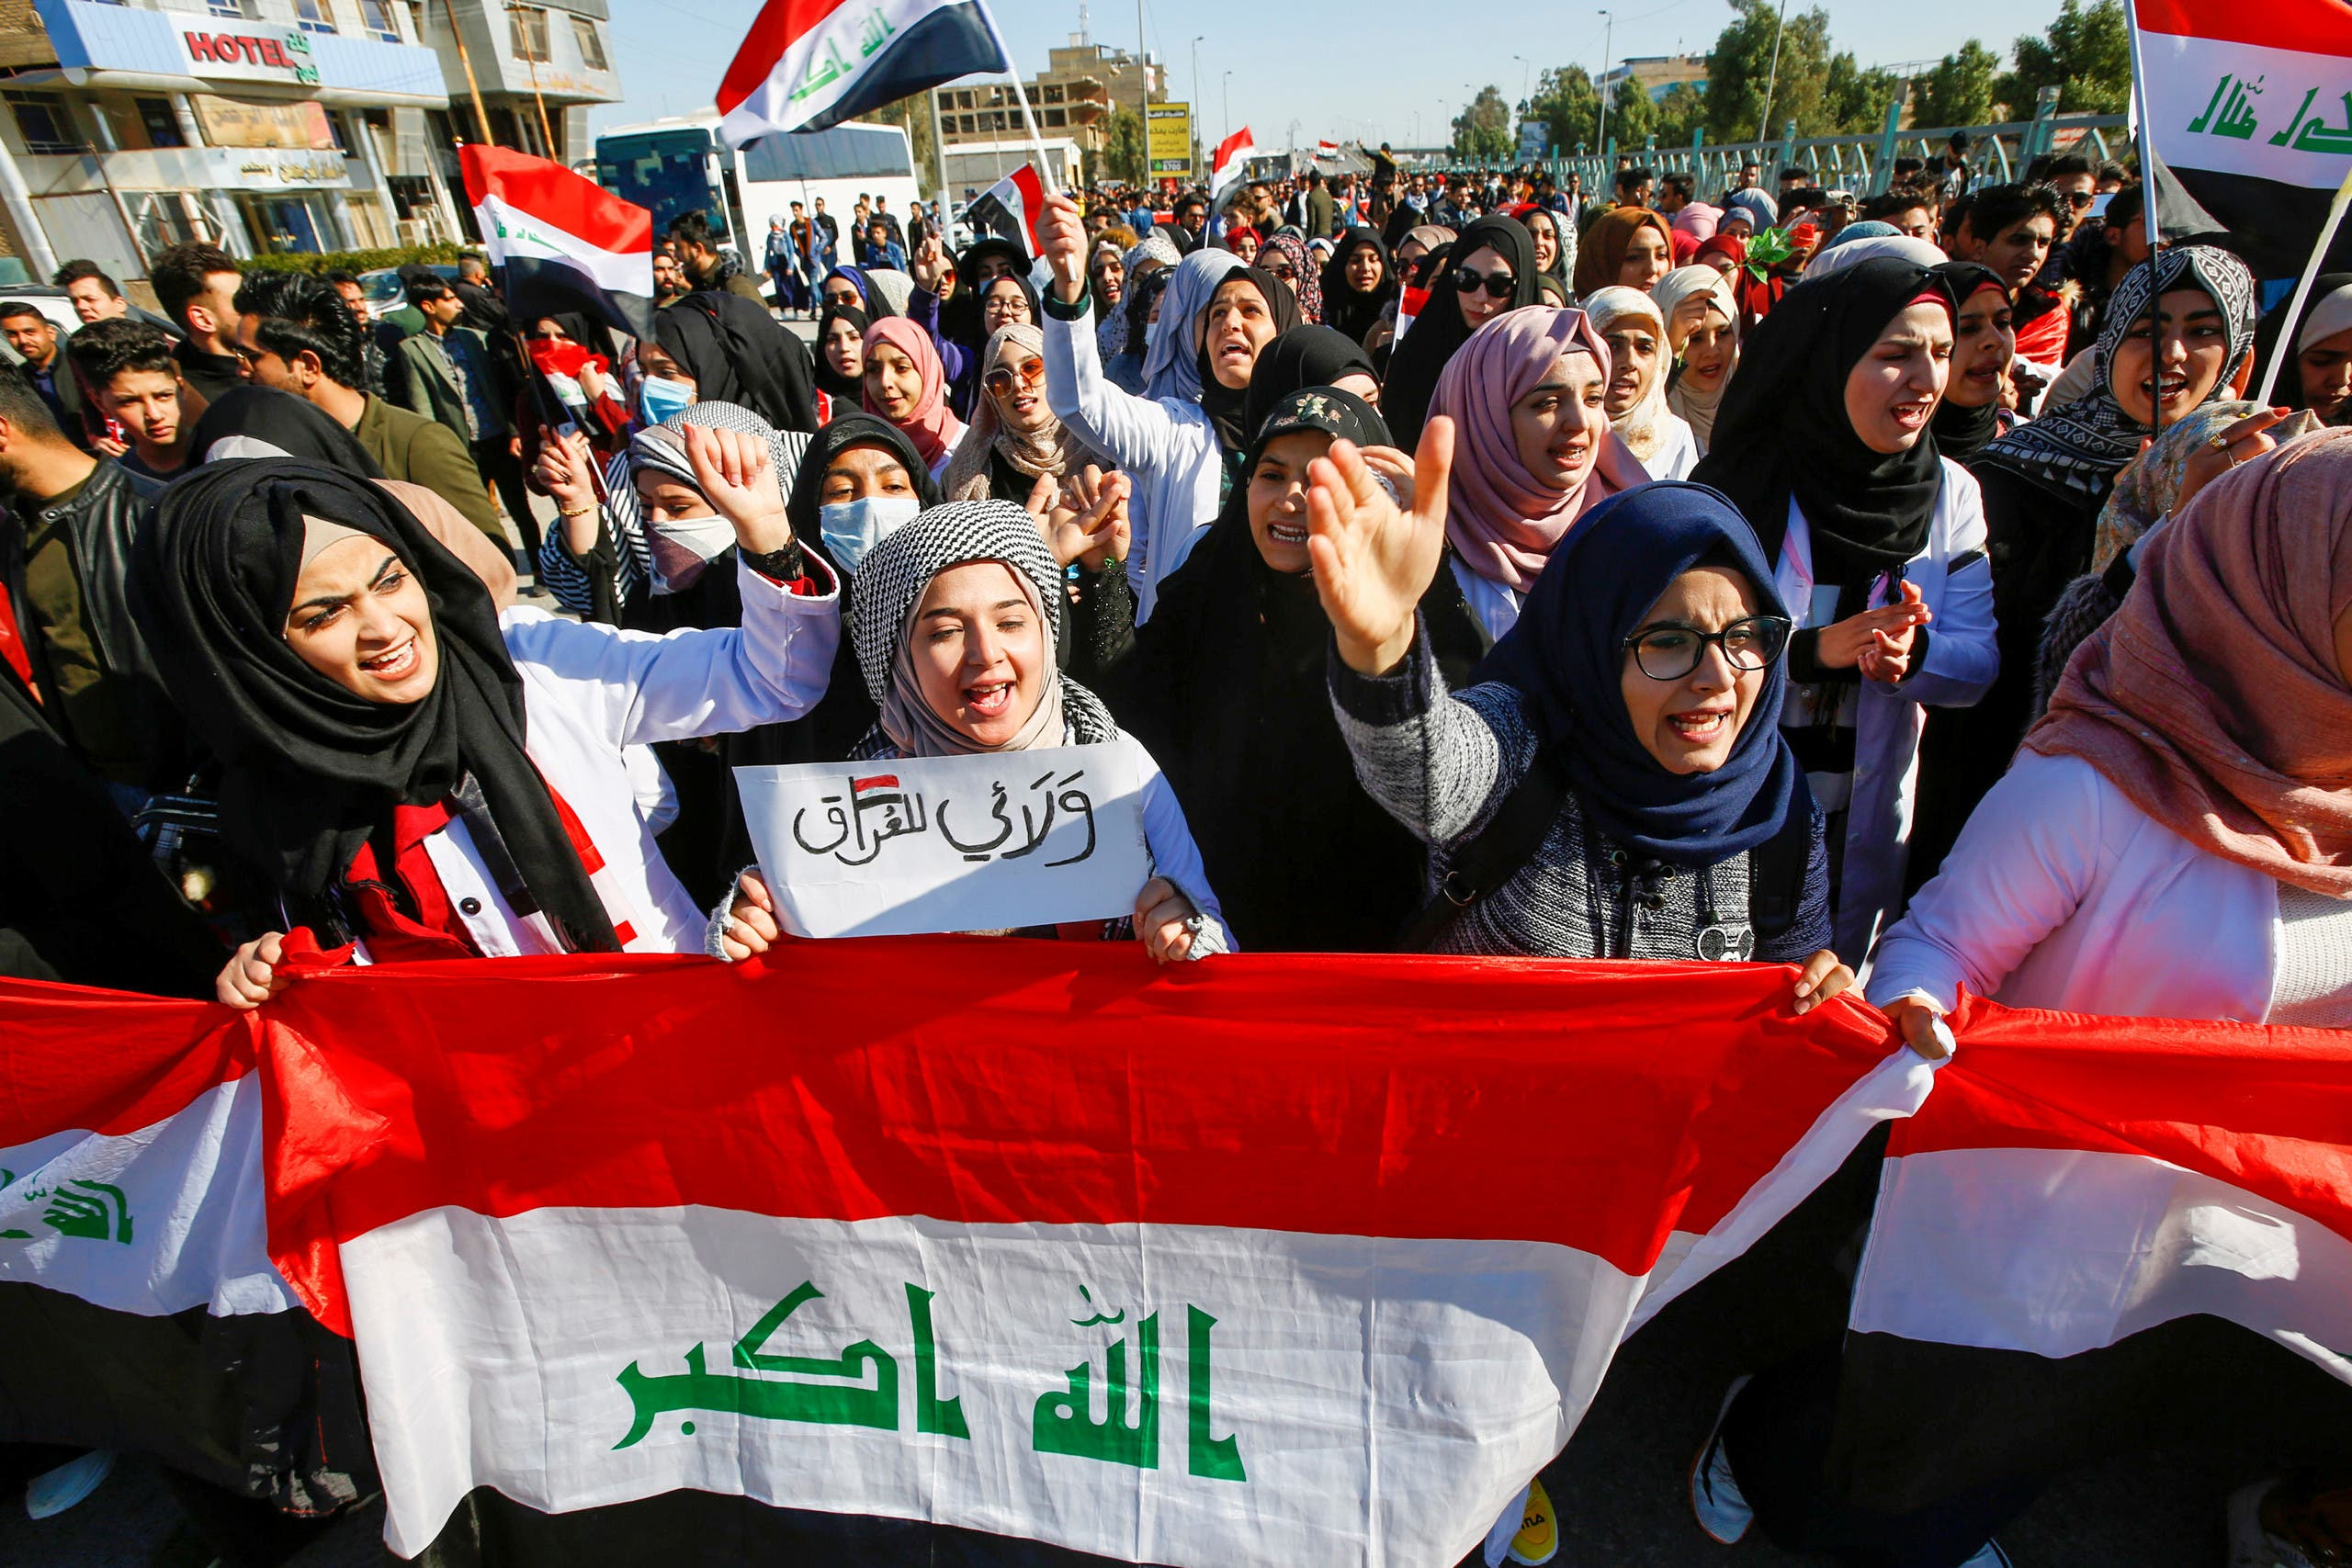 University students shout slogans during ongoing anti-government protests in Najaf, Iraq, on January 12, 2020. (Reuters)